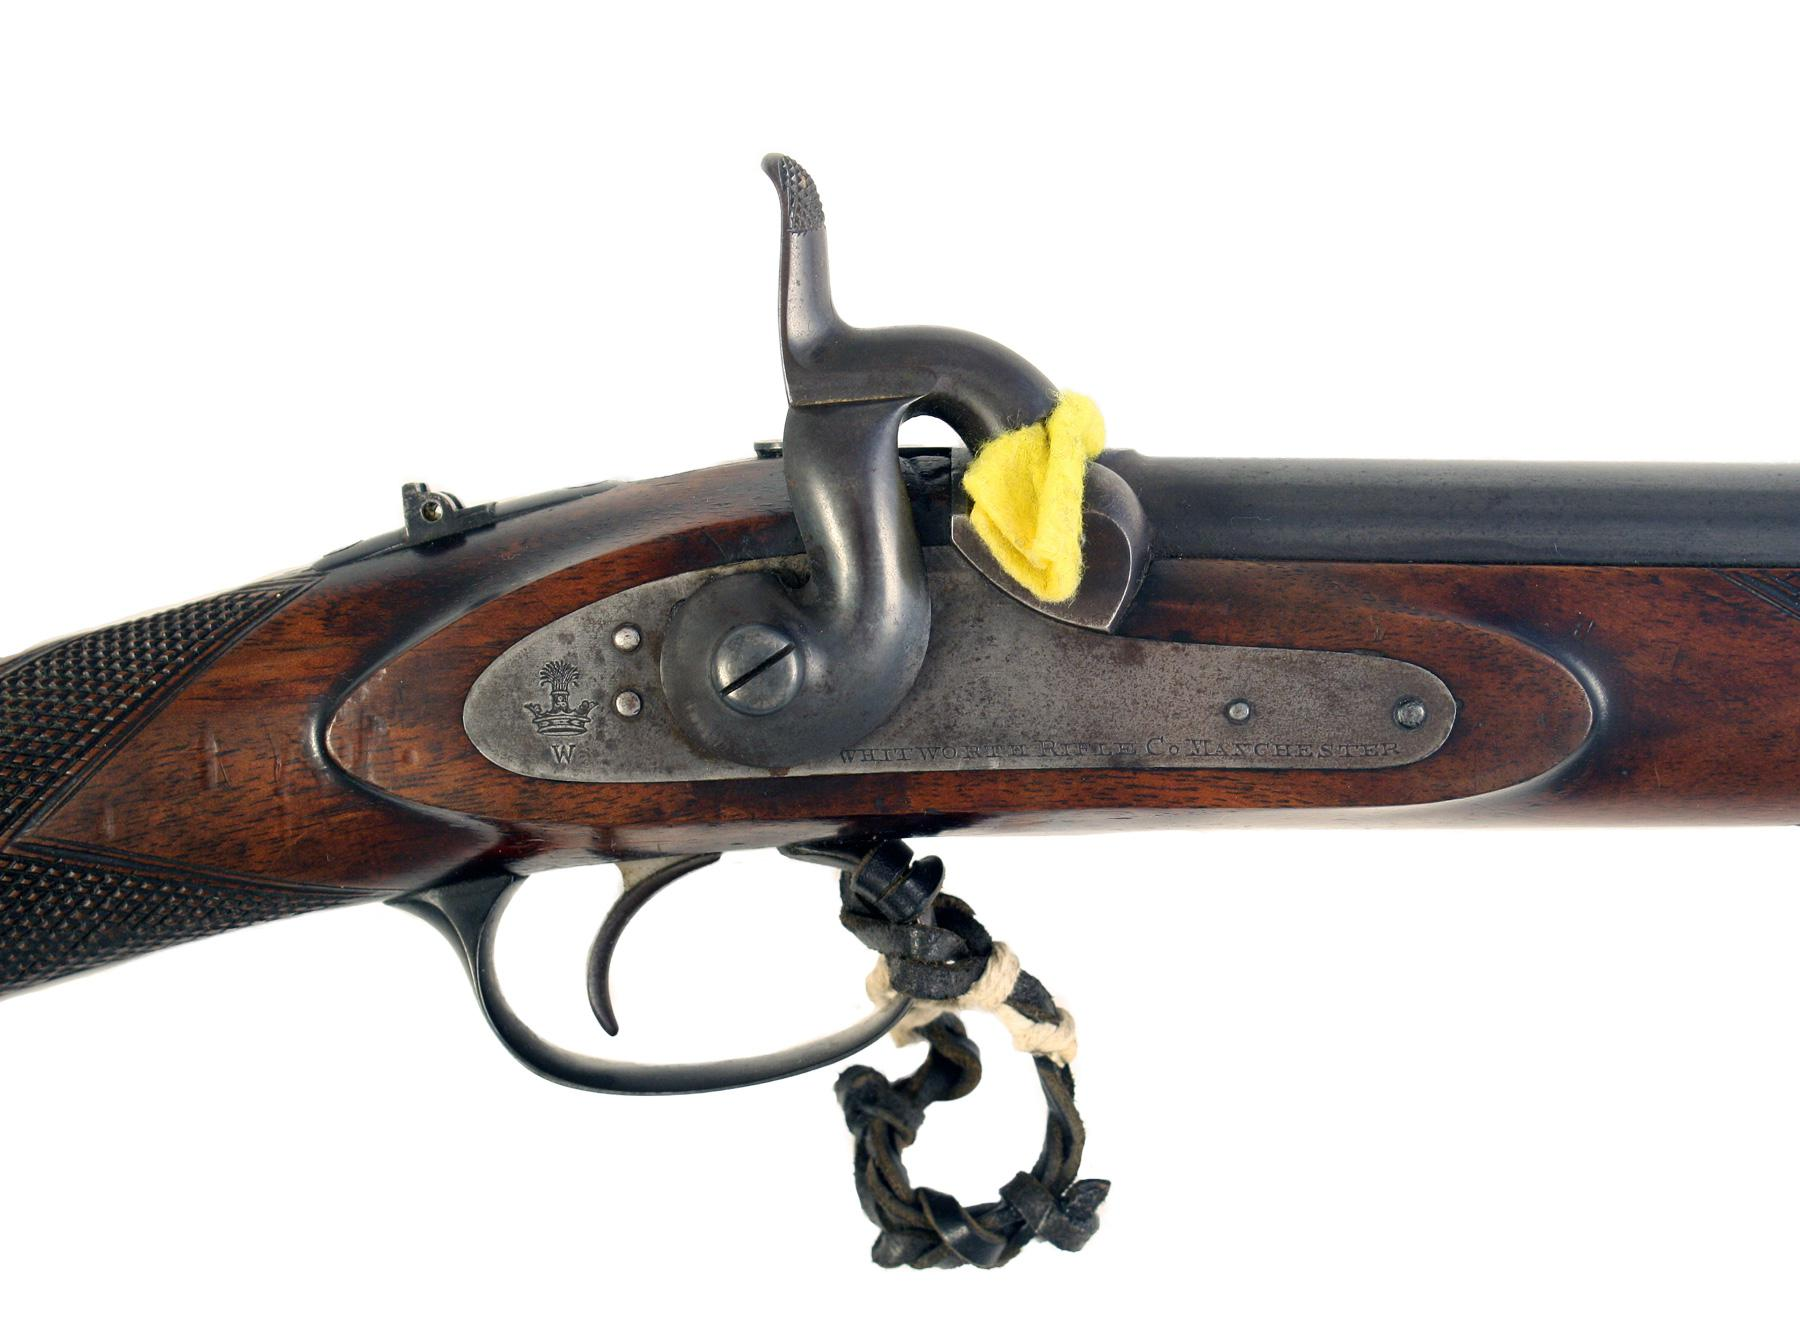 A Whitworth Prize Rifle